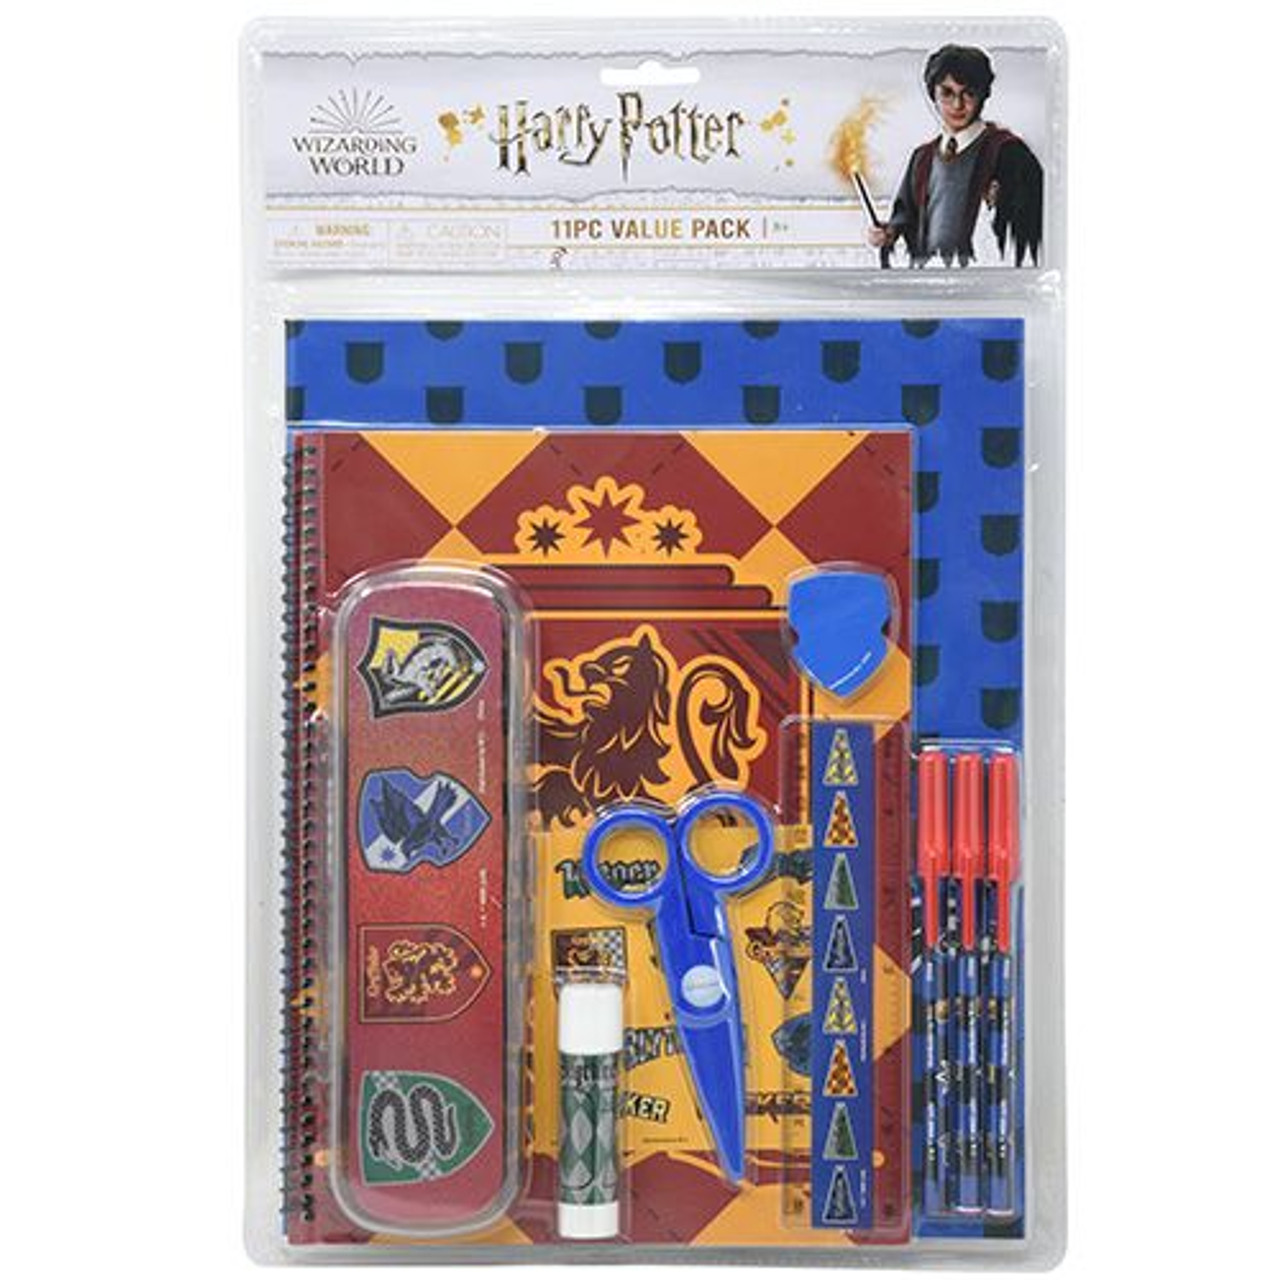 HARRY POTTER 11PC VALUE PACK